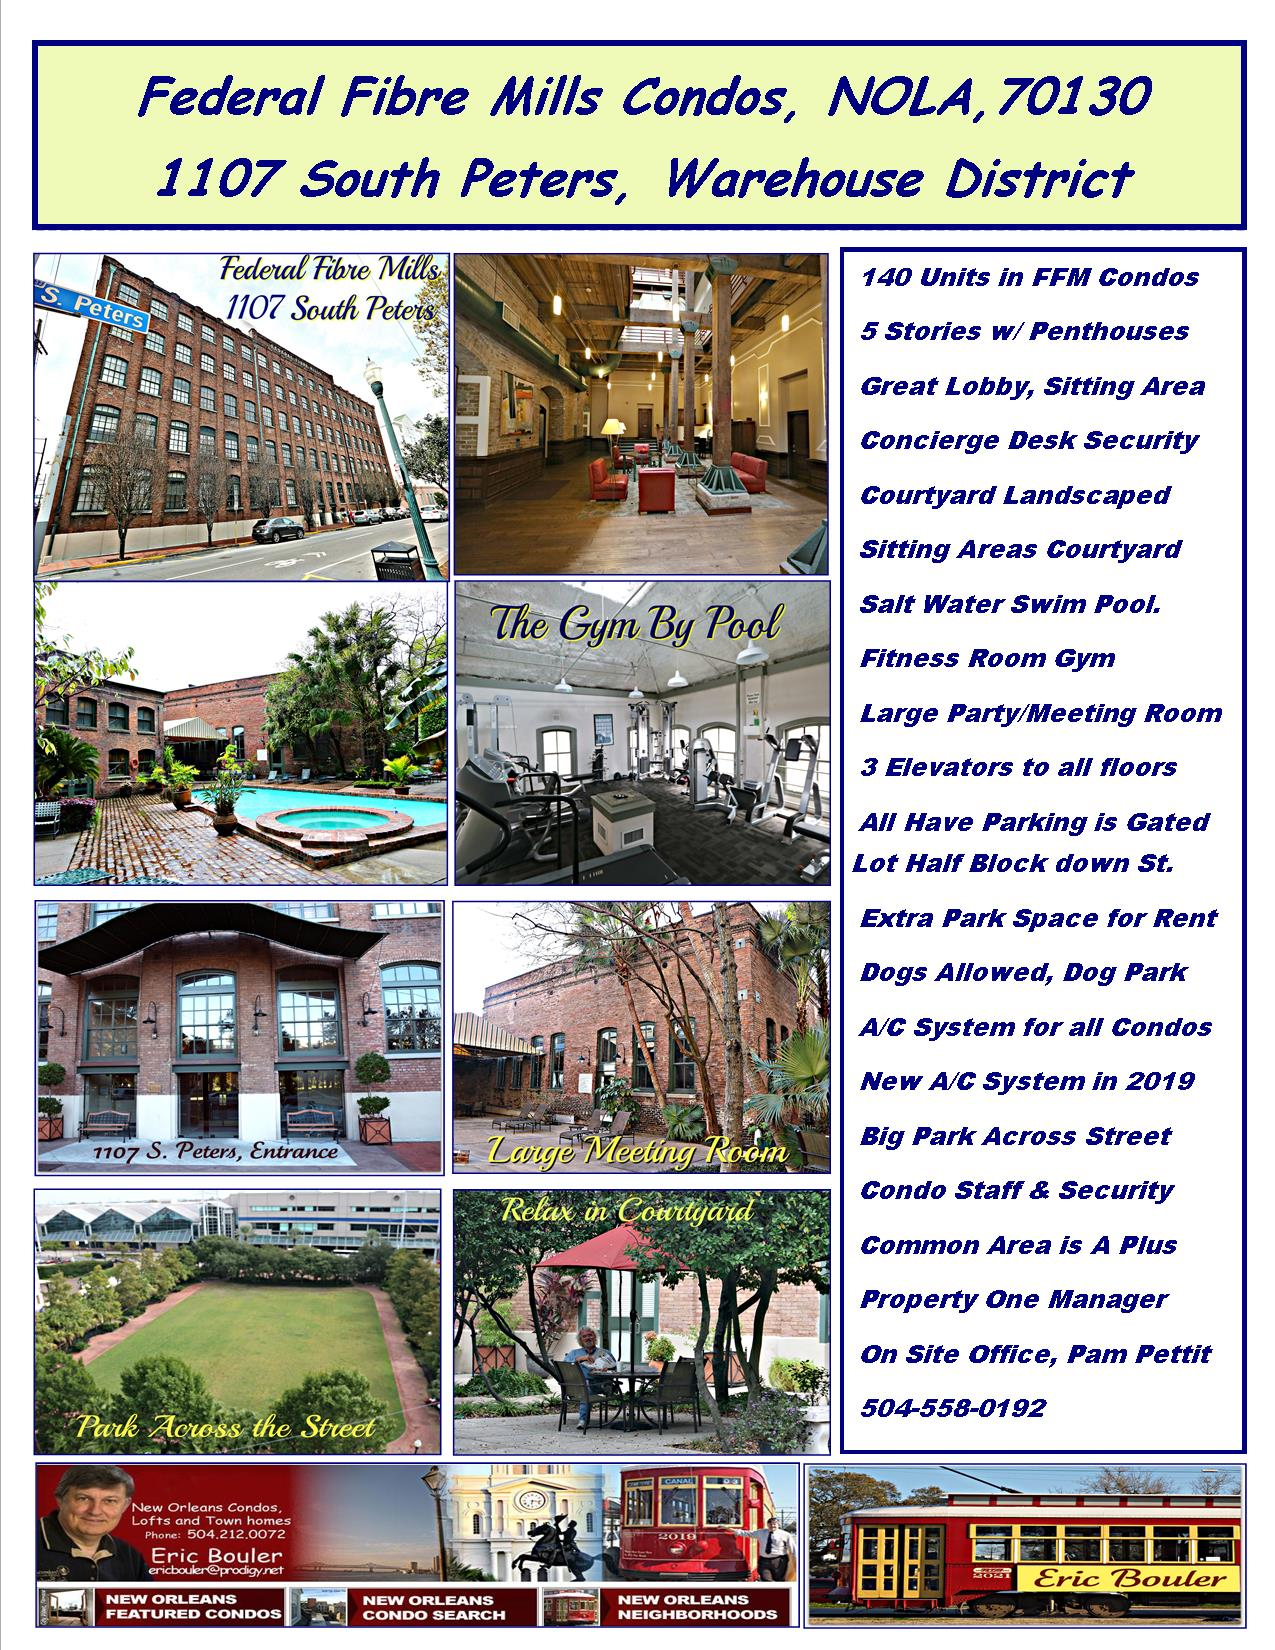 Federal Fibre Mills Condos in New Orleans